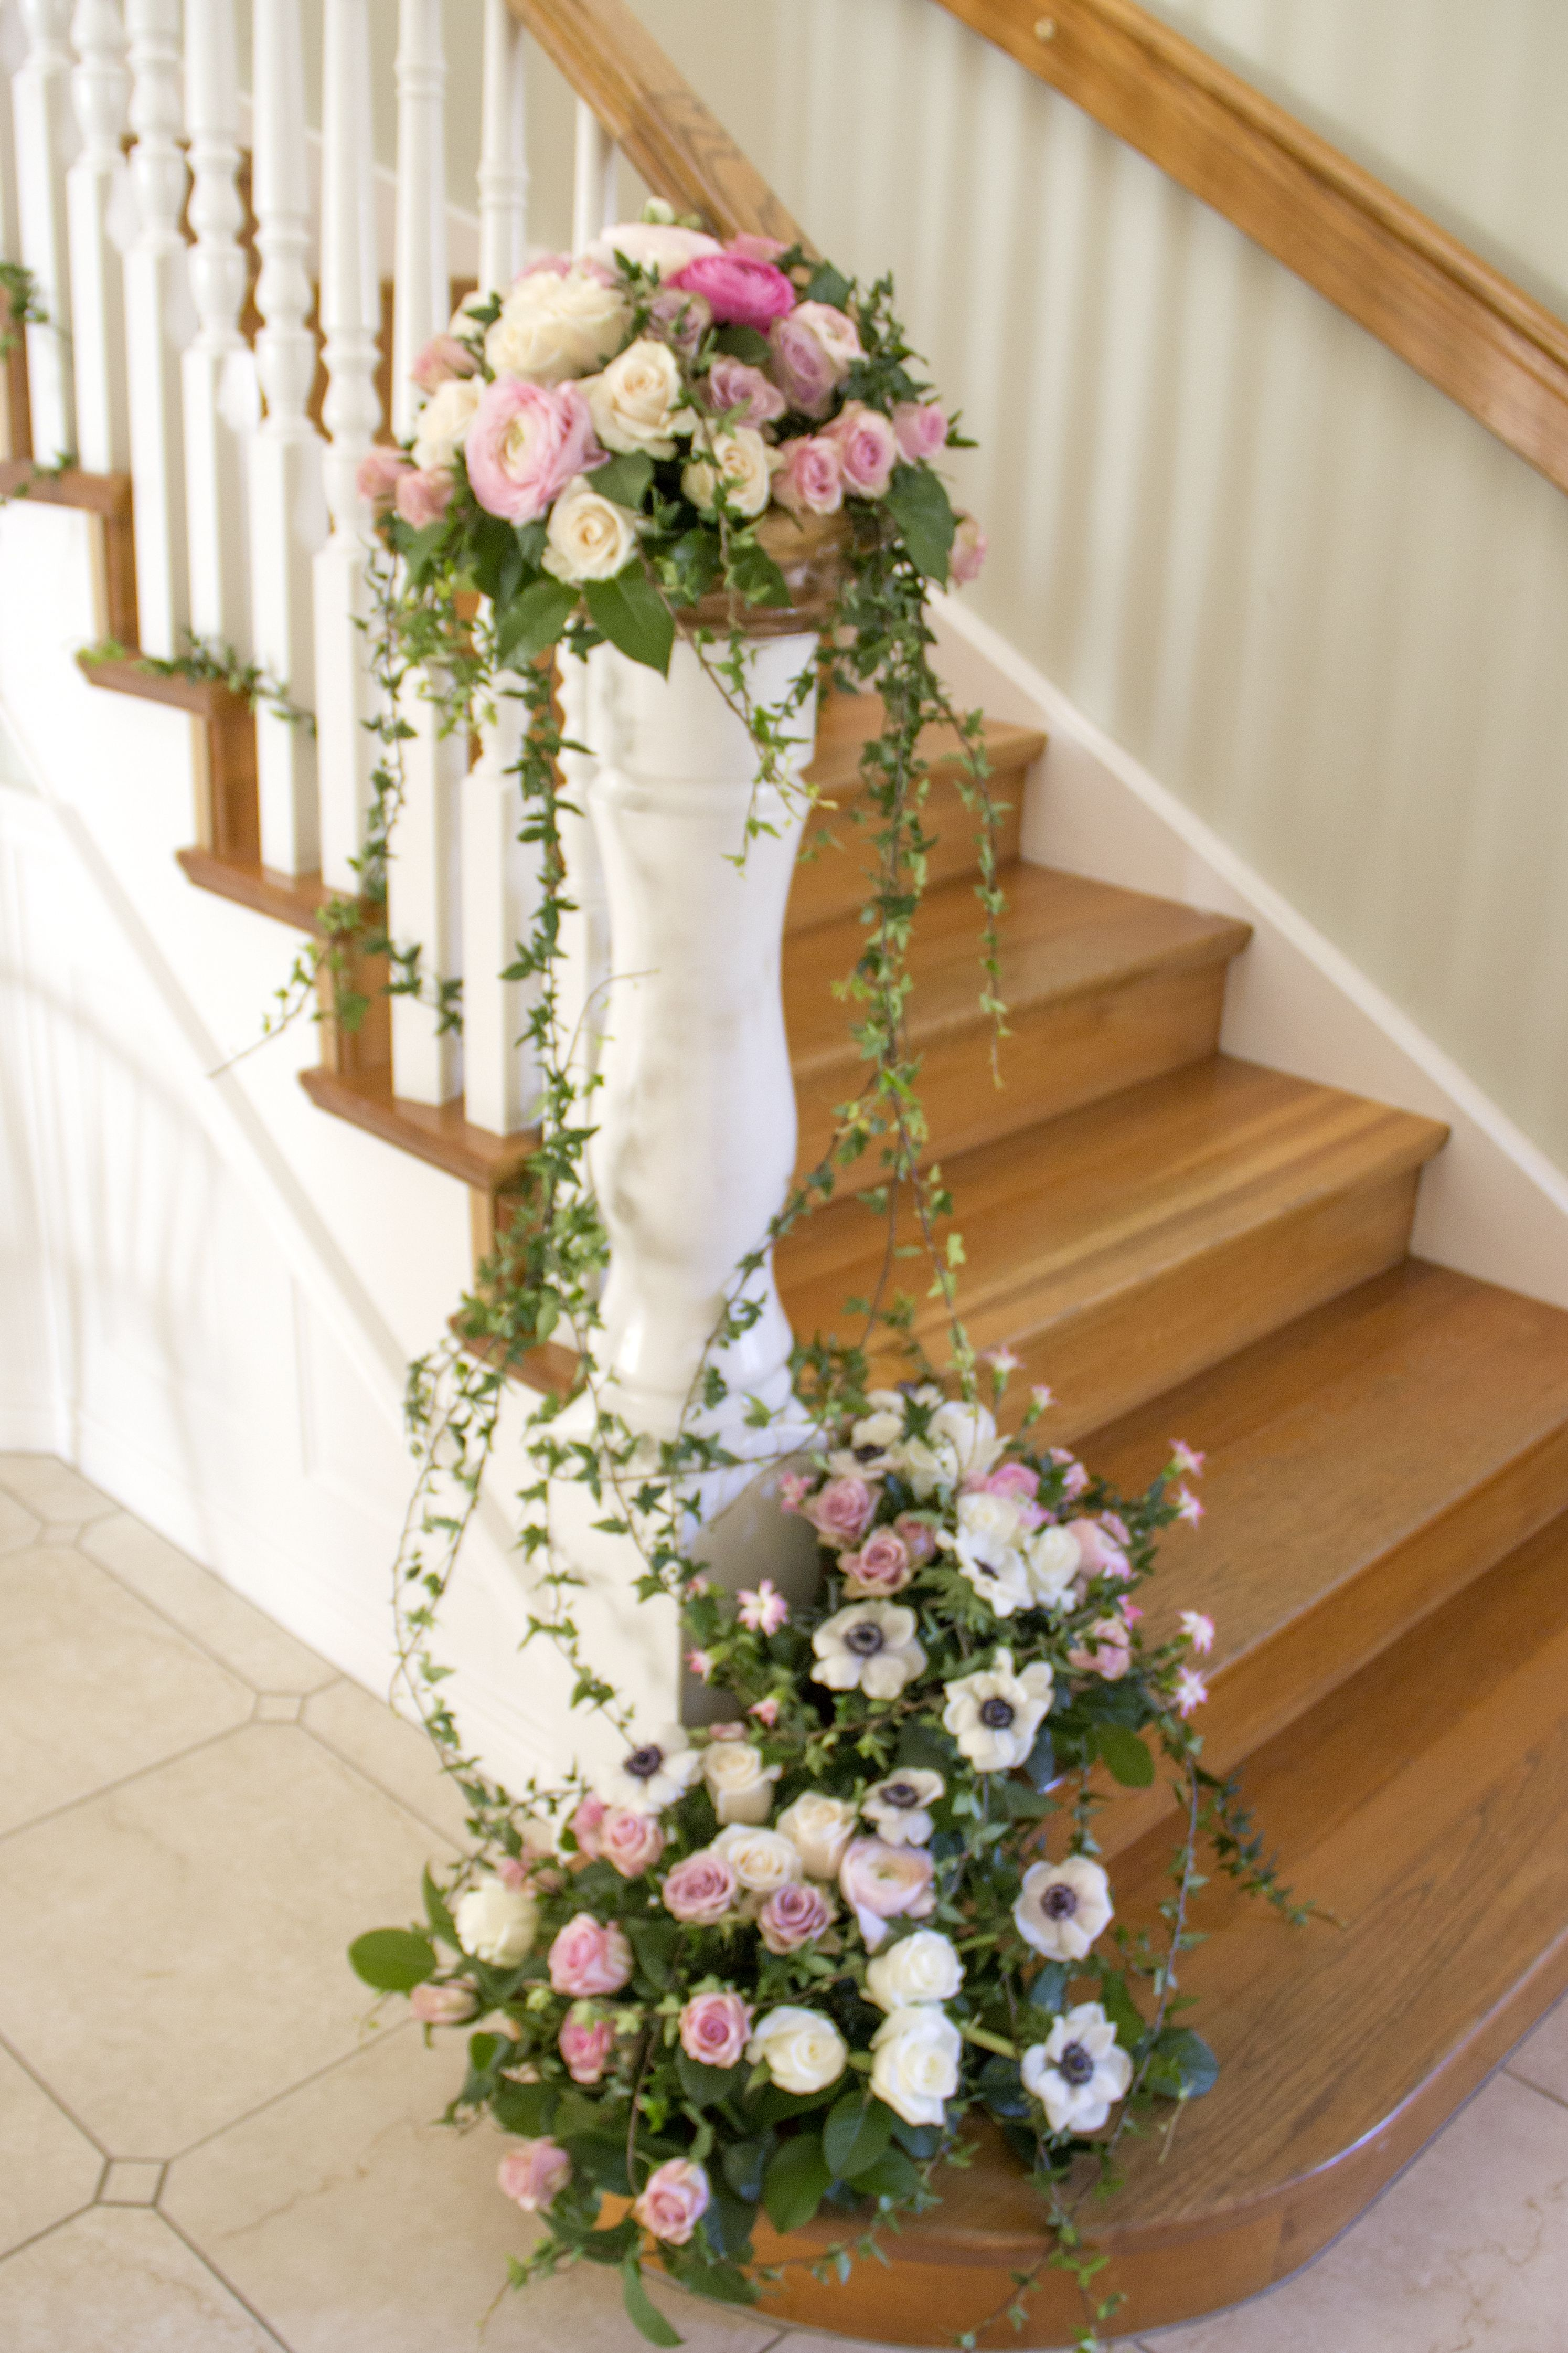 Flower floral decor decoration garland staircase idea wedding sahola flowers shop is an upscale floral art event design studio specializing in wedding flowers corporate and special events in nyc summit nj junglespirit Image collections